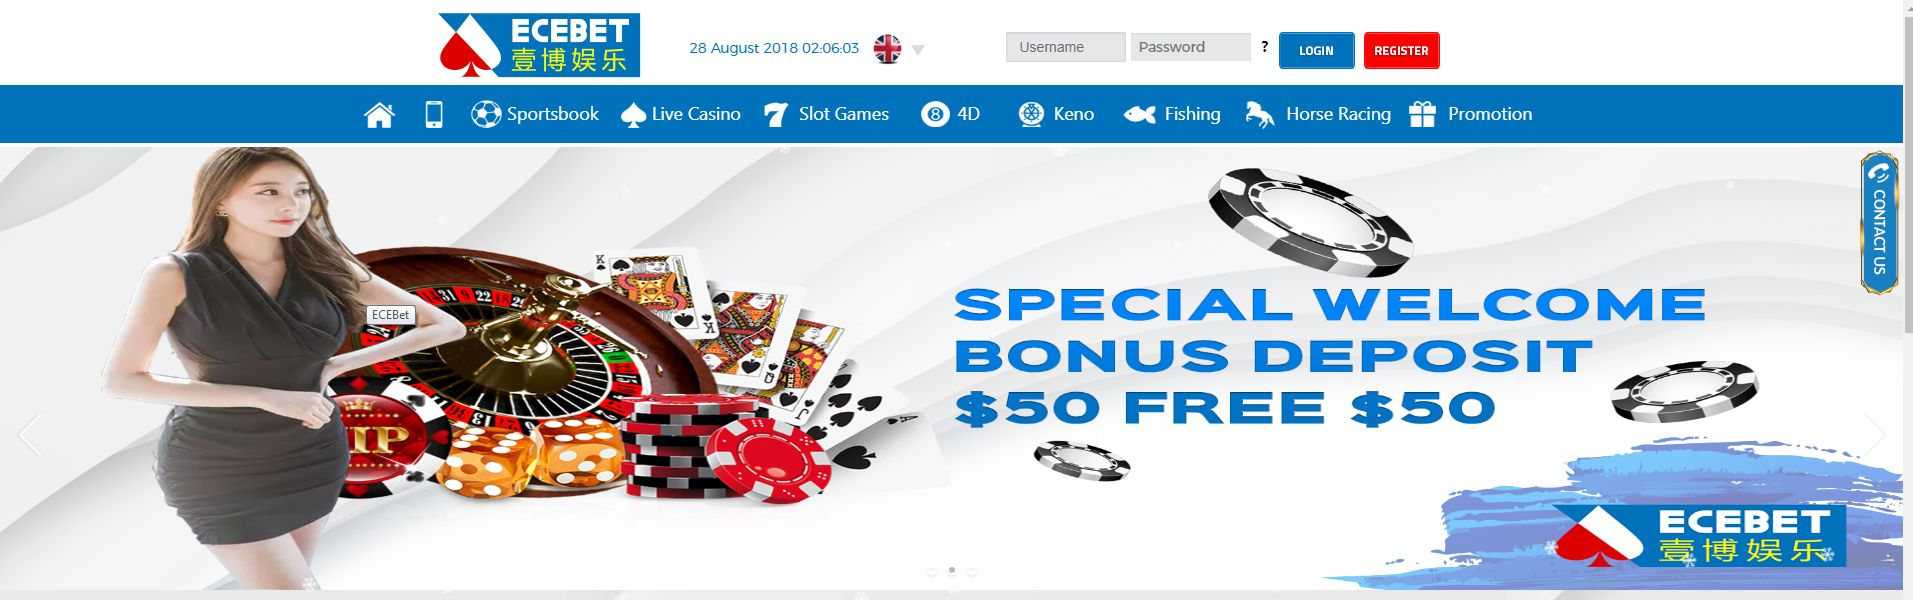 ECEBET is an officially registered online gaming company